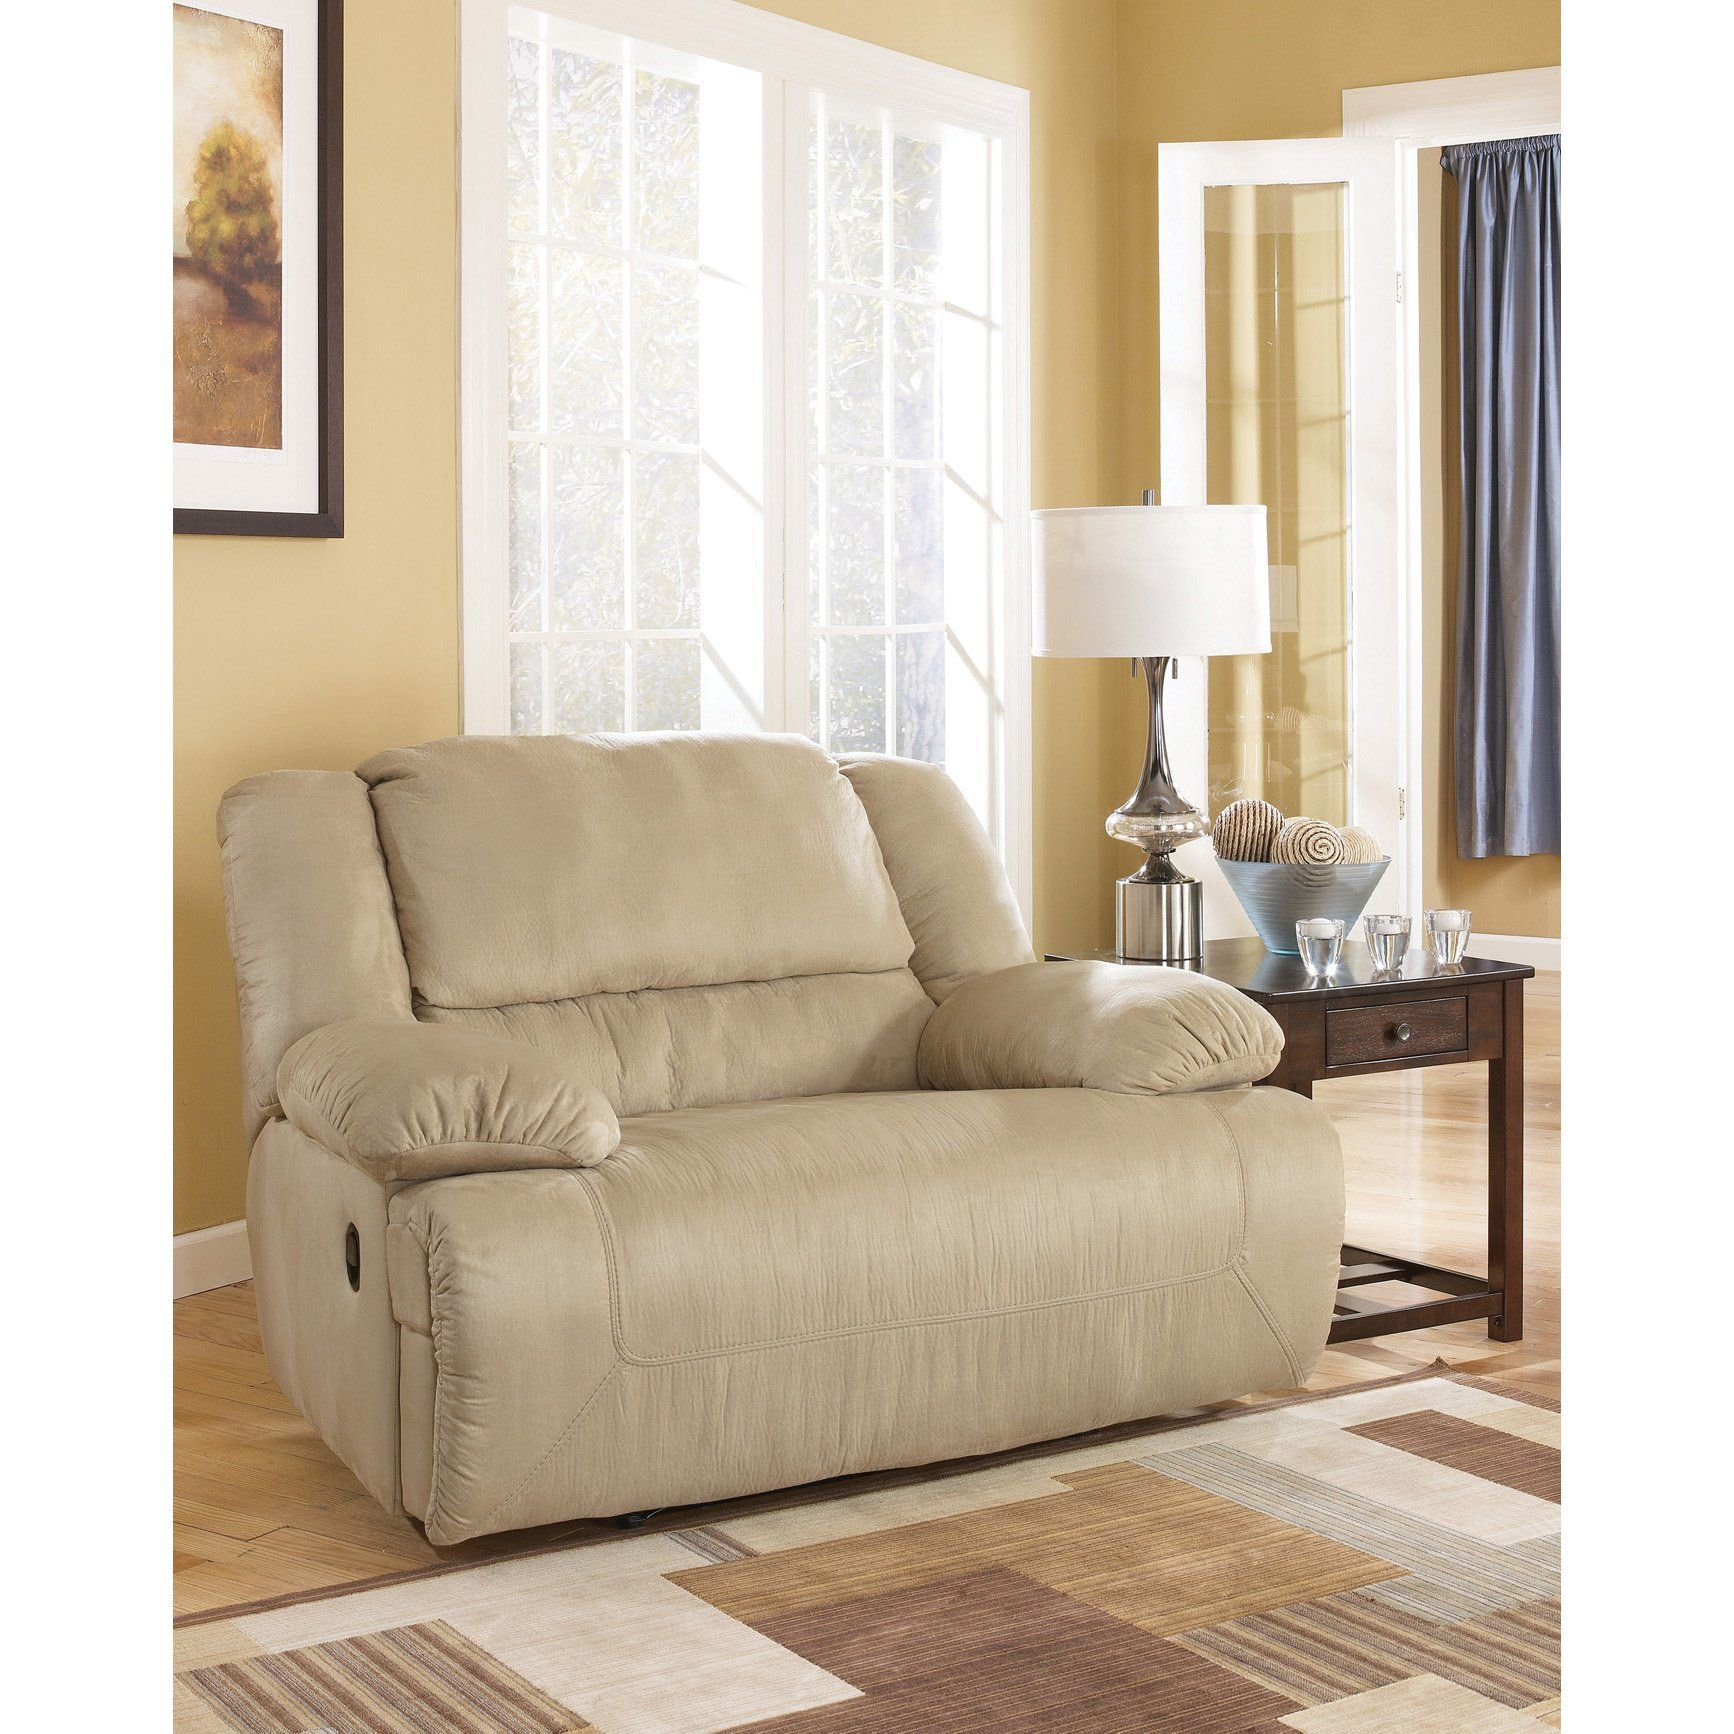 Charming Signature Design By Ashley Hopkins Zero Wall Recliner With Wide Seat Box In  Mocha   Customer